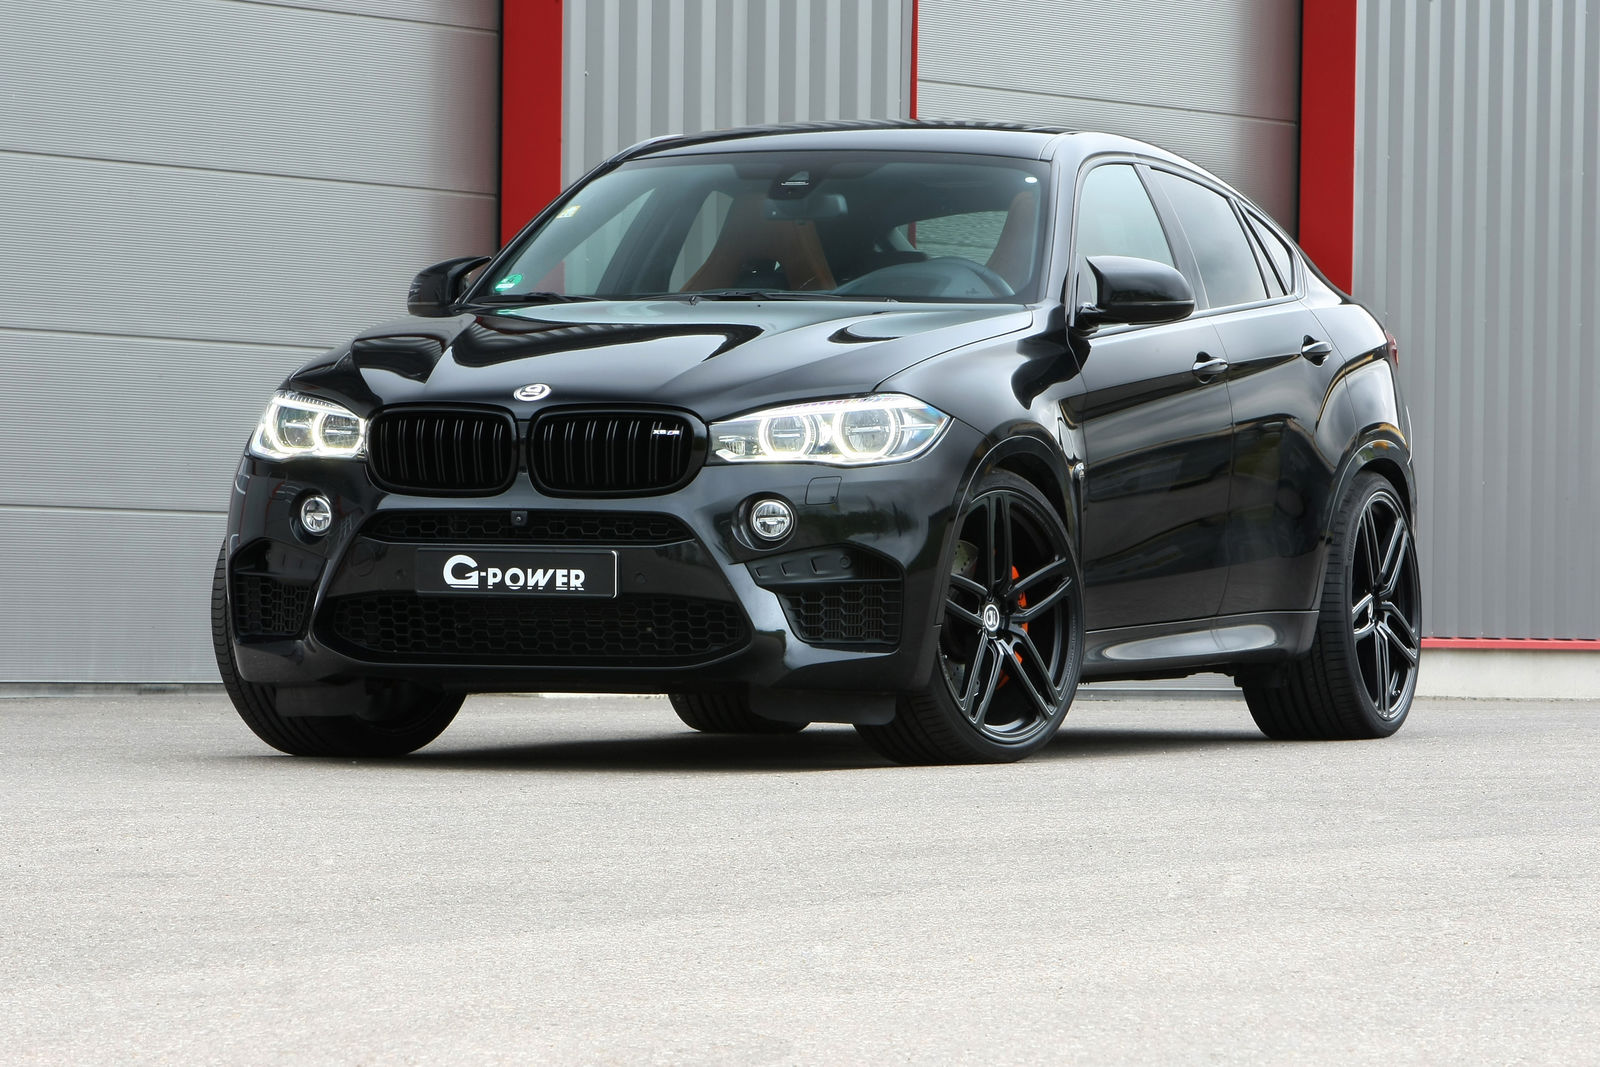 bmw x6 m g power 1